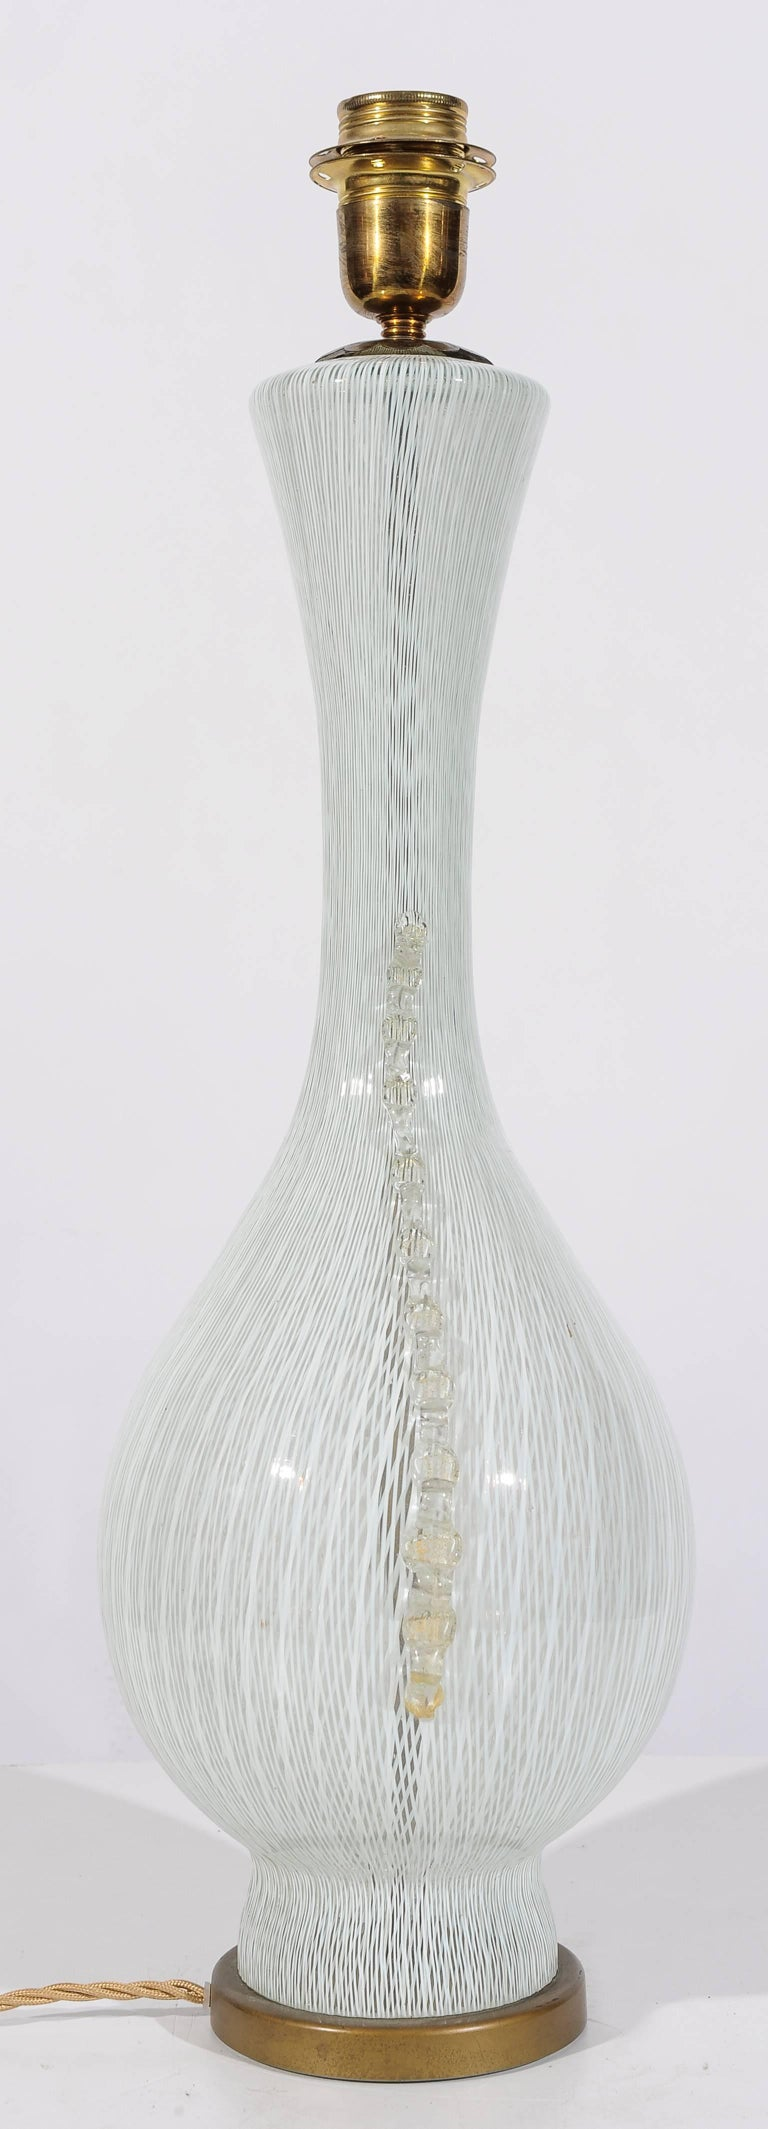 Hand-Crafted Rare Elegant Vintage Italian Glass Table Lamp by Balsamo Stella For Sale